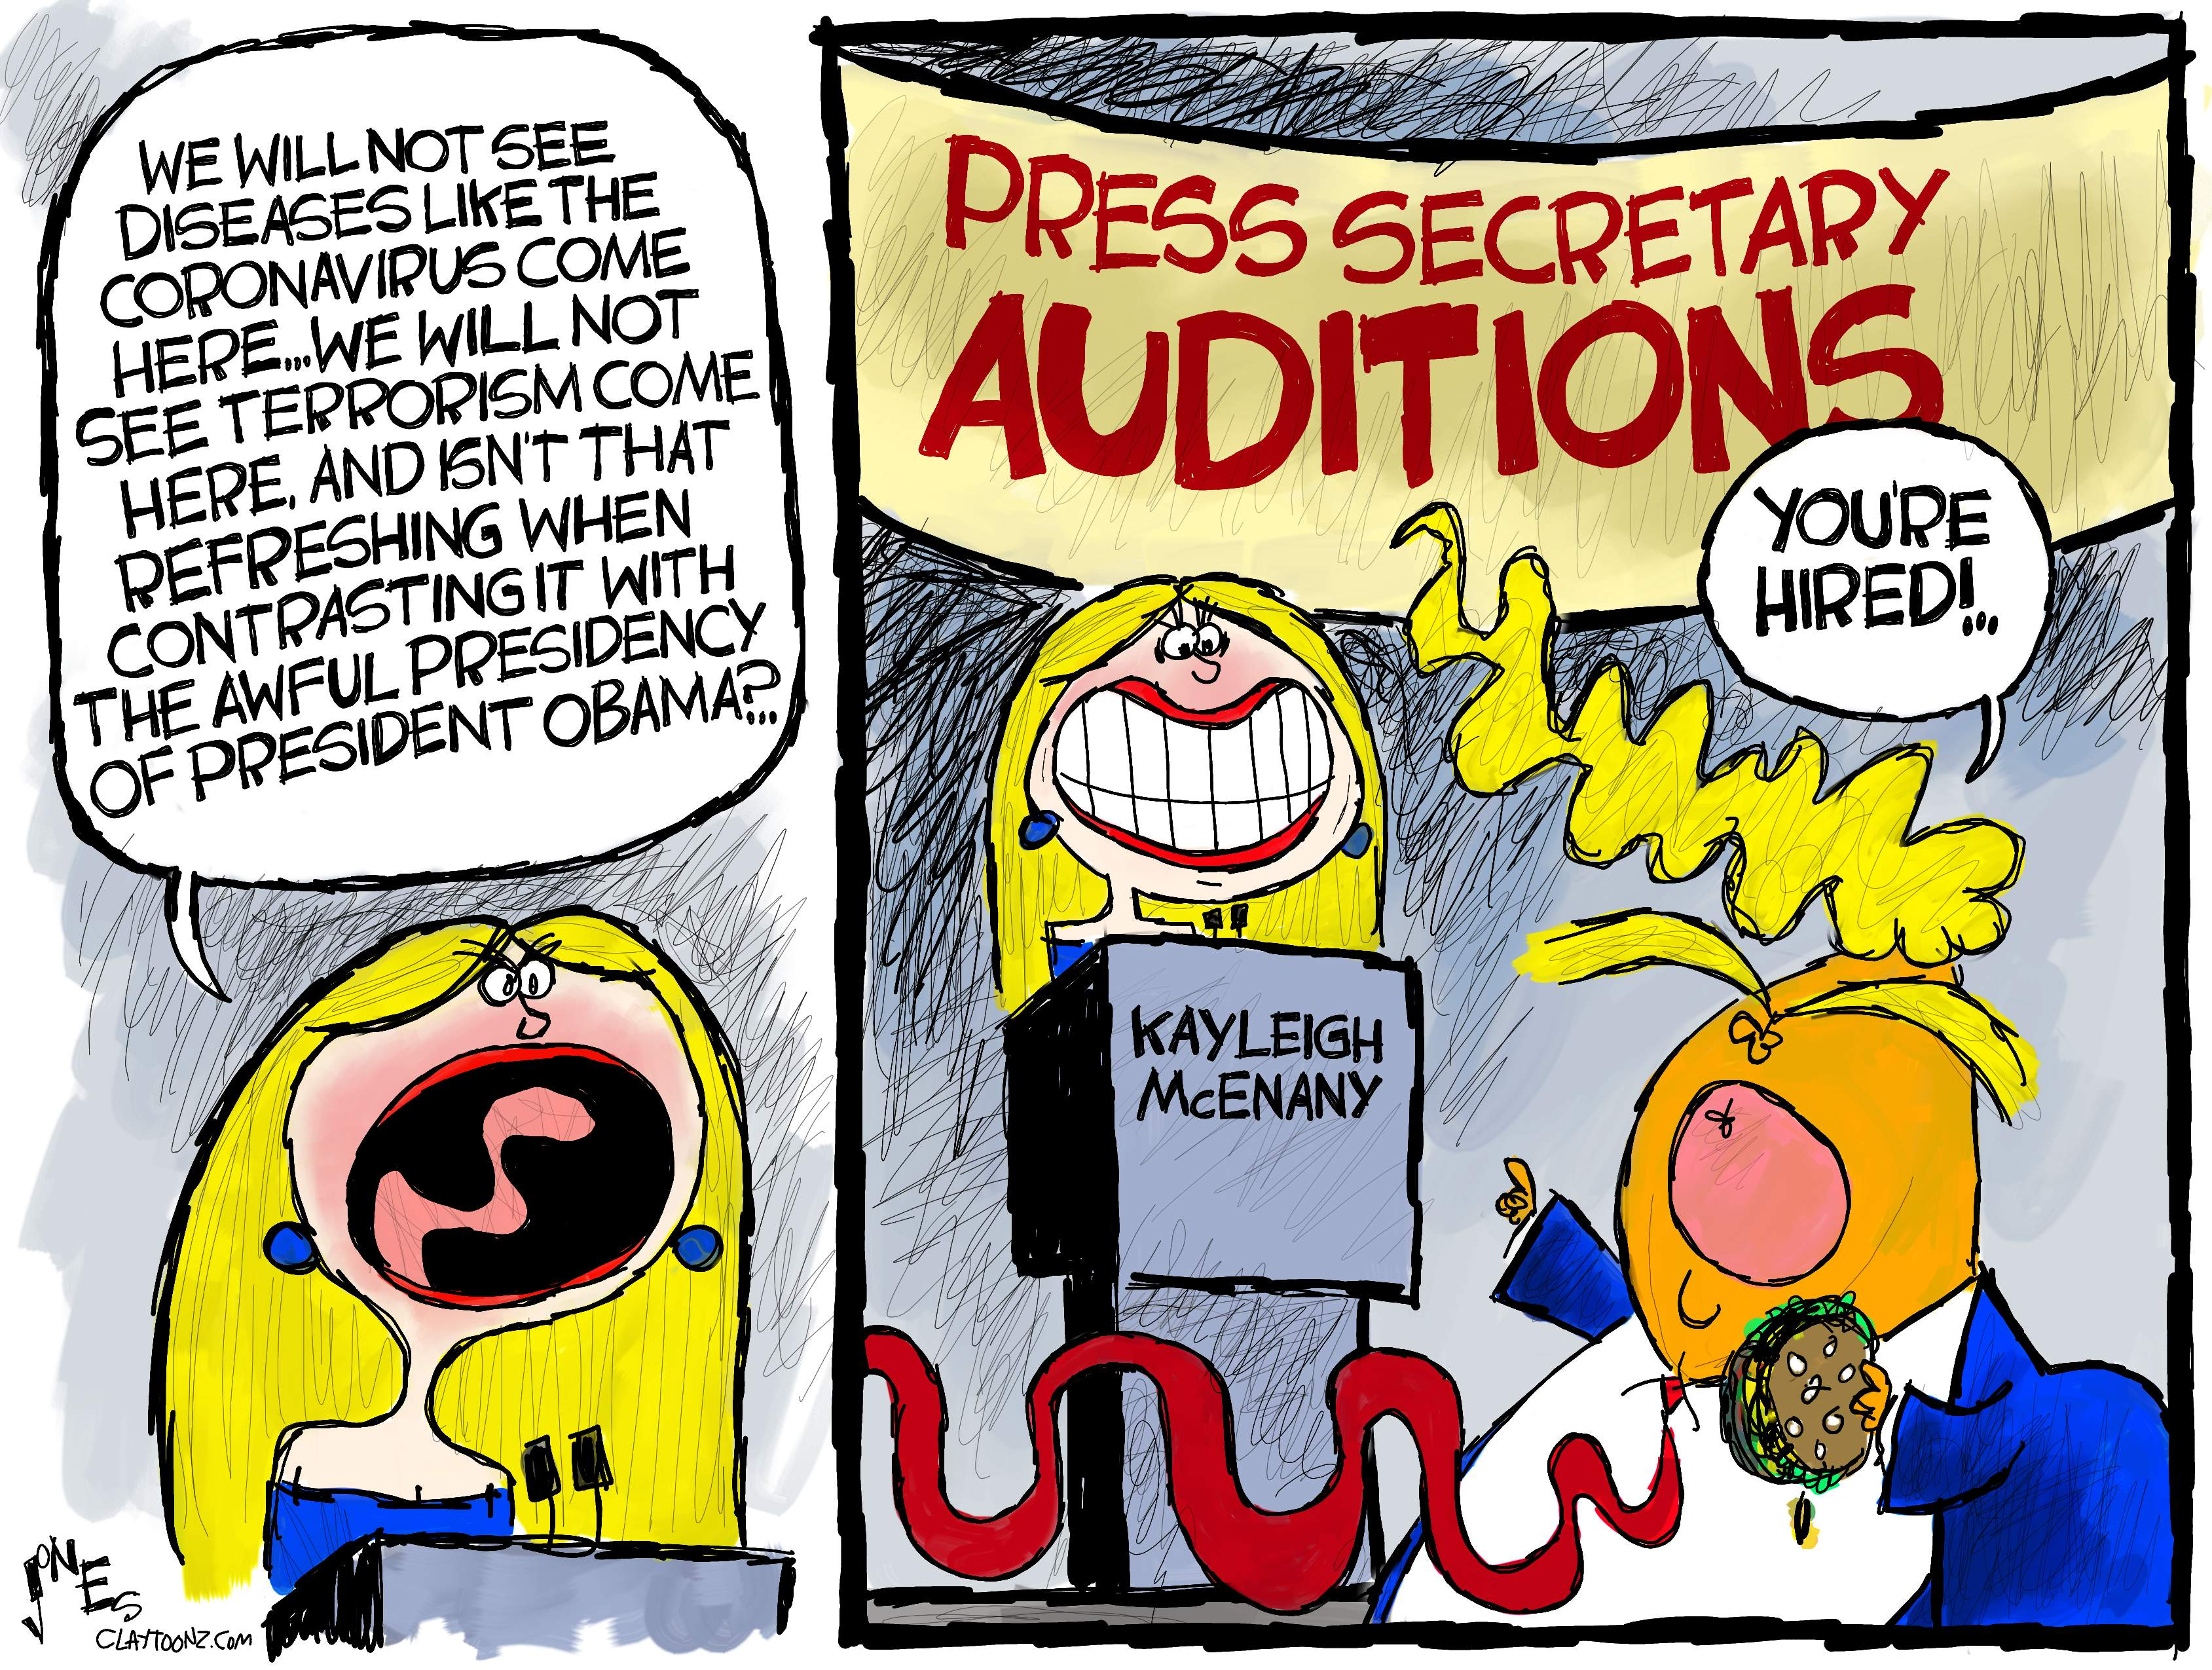 The New And Improved Trump Goon Claytoonz